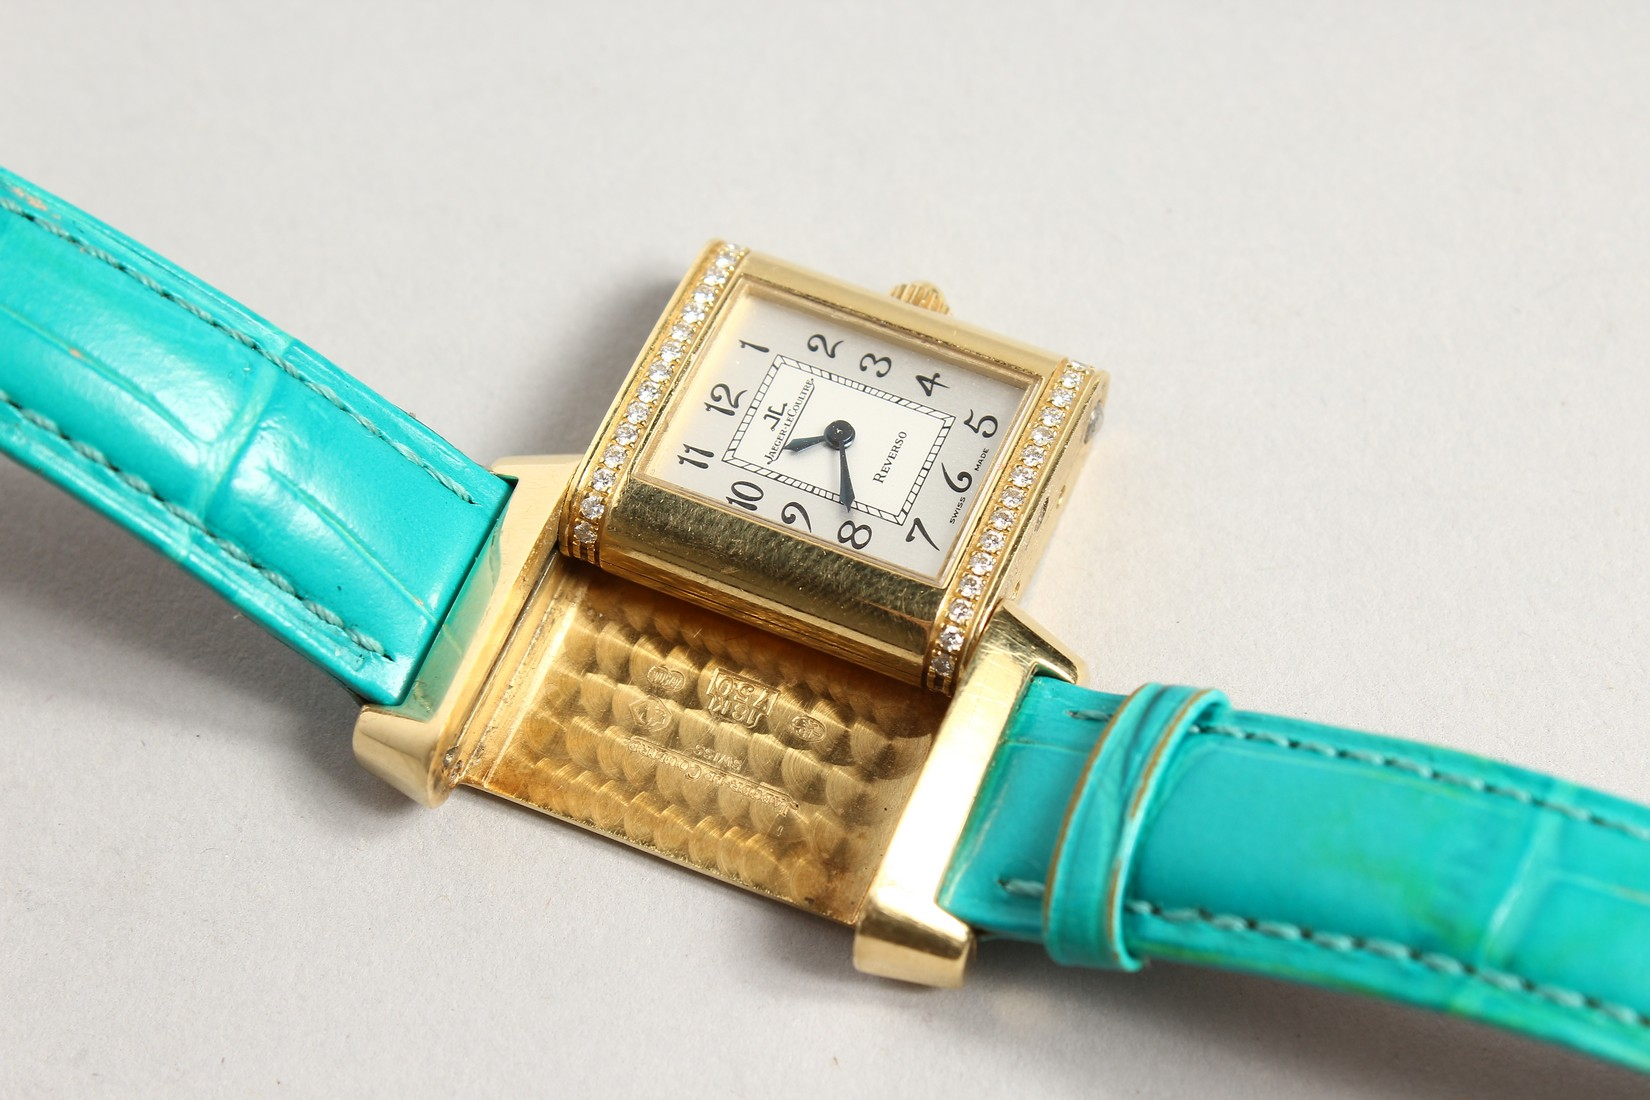 A VERY GOOD 18CT. GOLD AND DIAMOND JAGEUR LE COUTRE REVERSE WRISTWATCH, with a leather strap. - Image 4 of 8